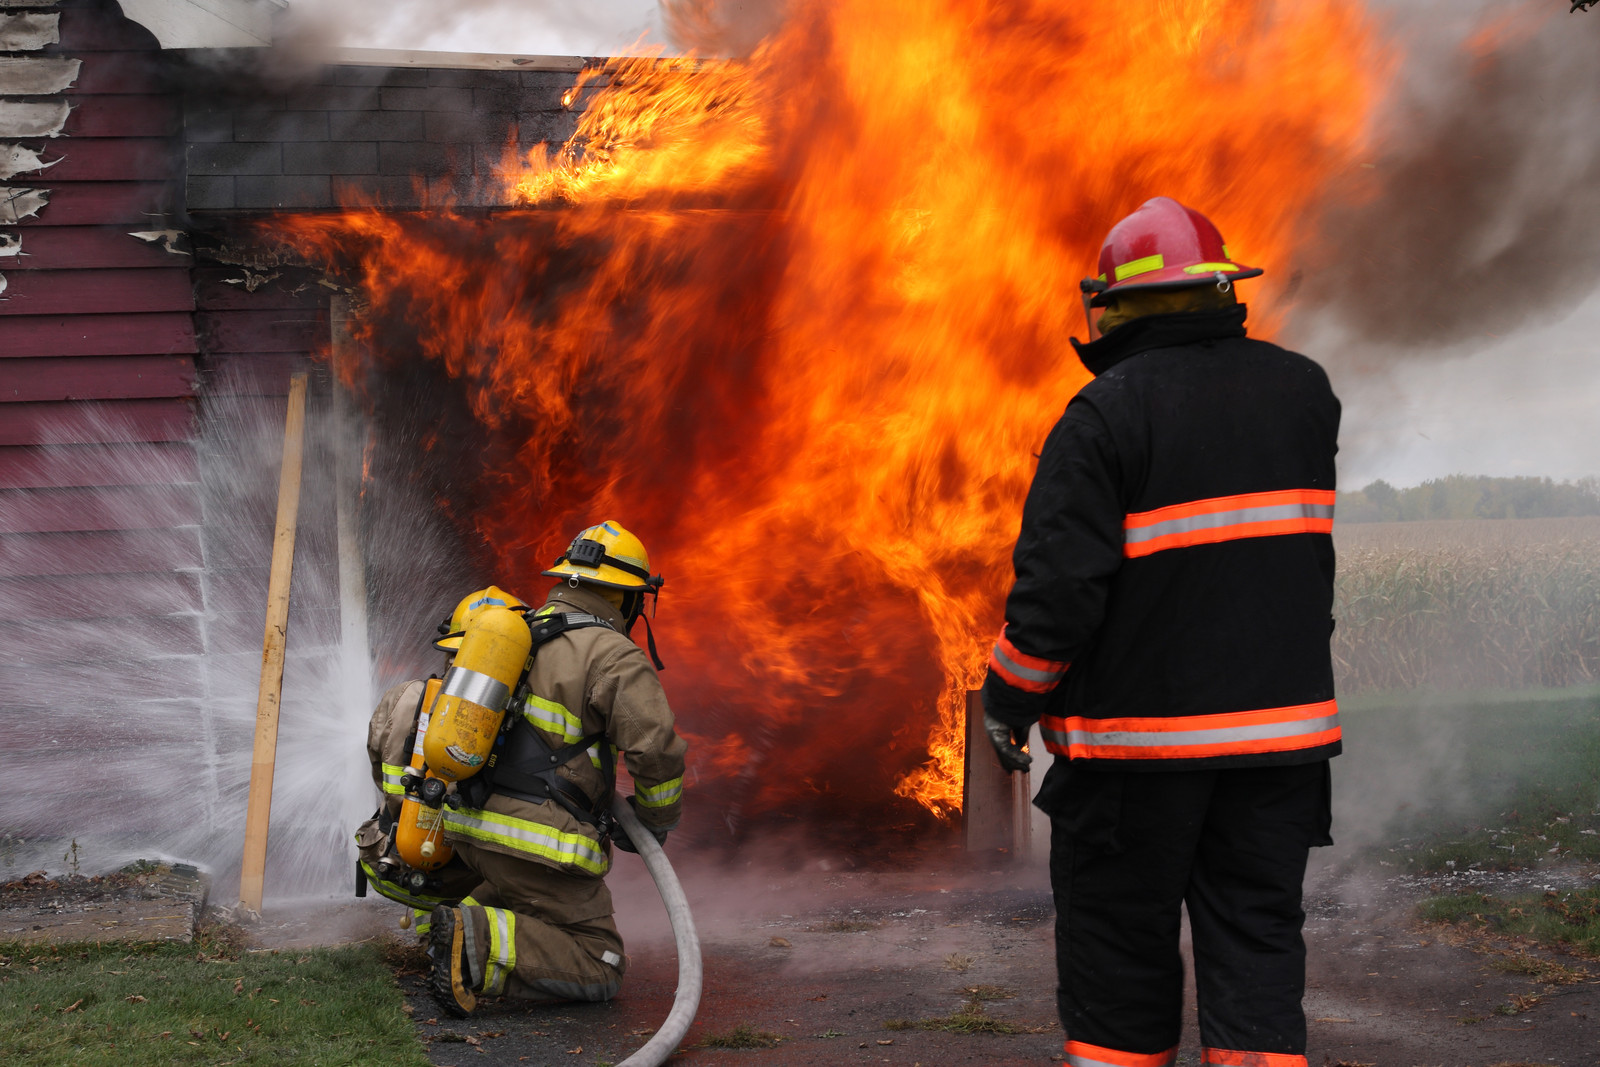 clean dryer vents can reduce house fires